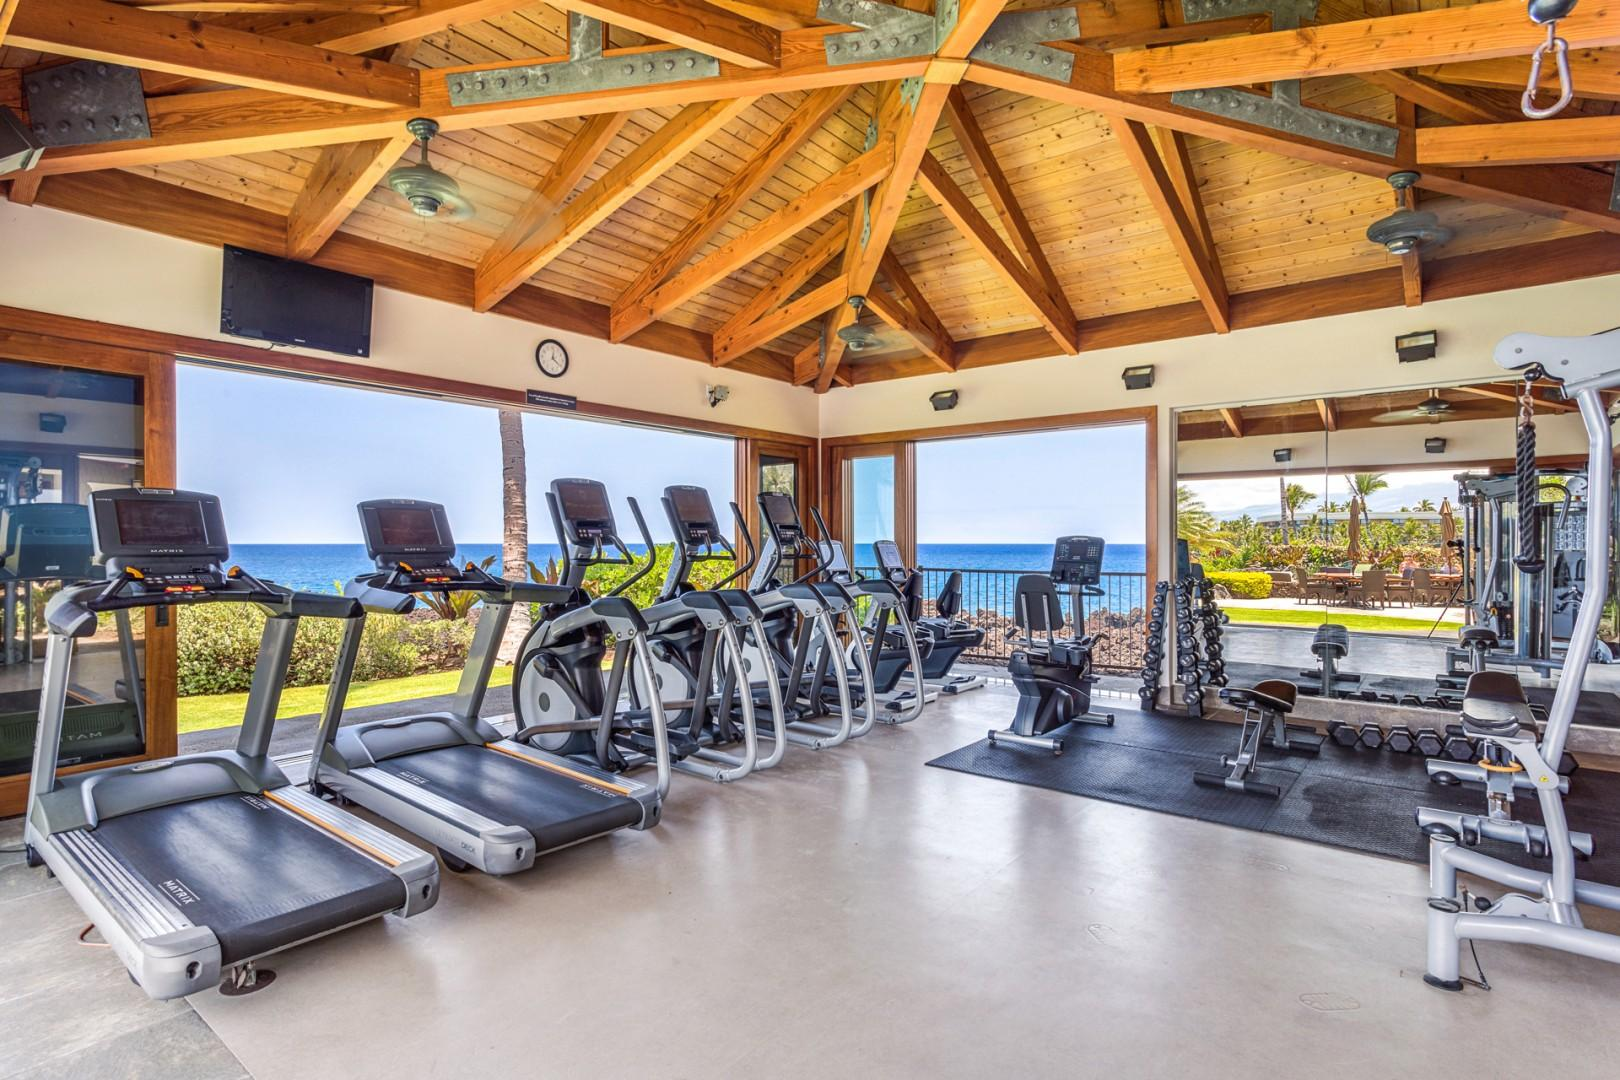 Fitness room interior with multiple and varied cardio and weight machines.